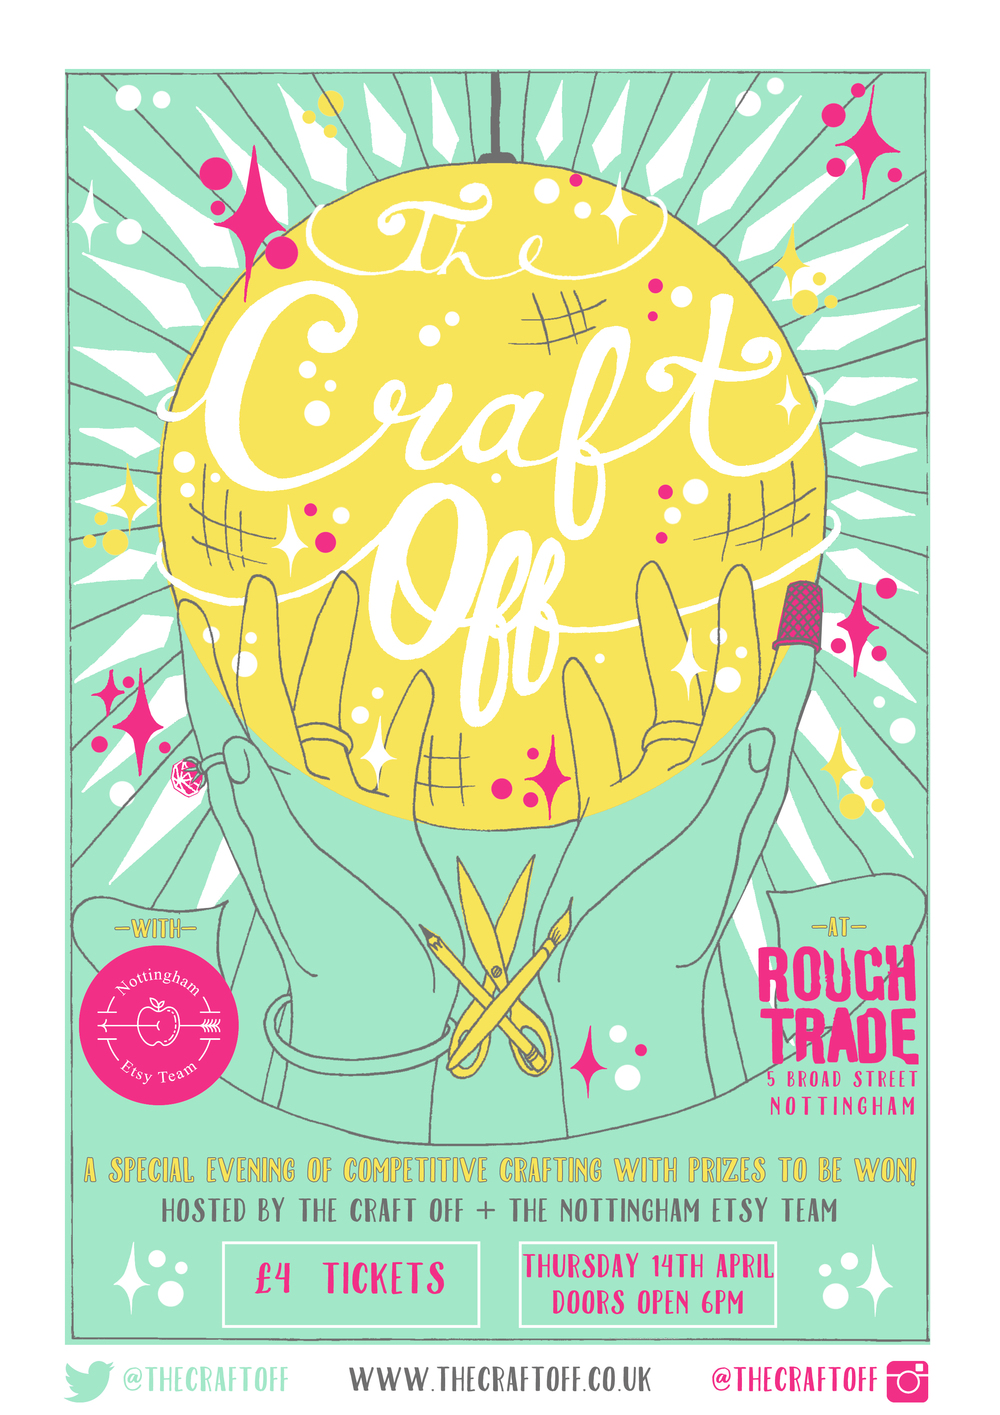 Poster designed for The Craft Off event